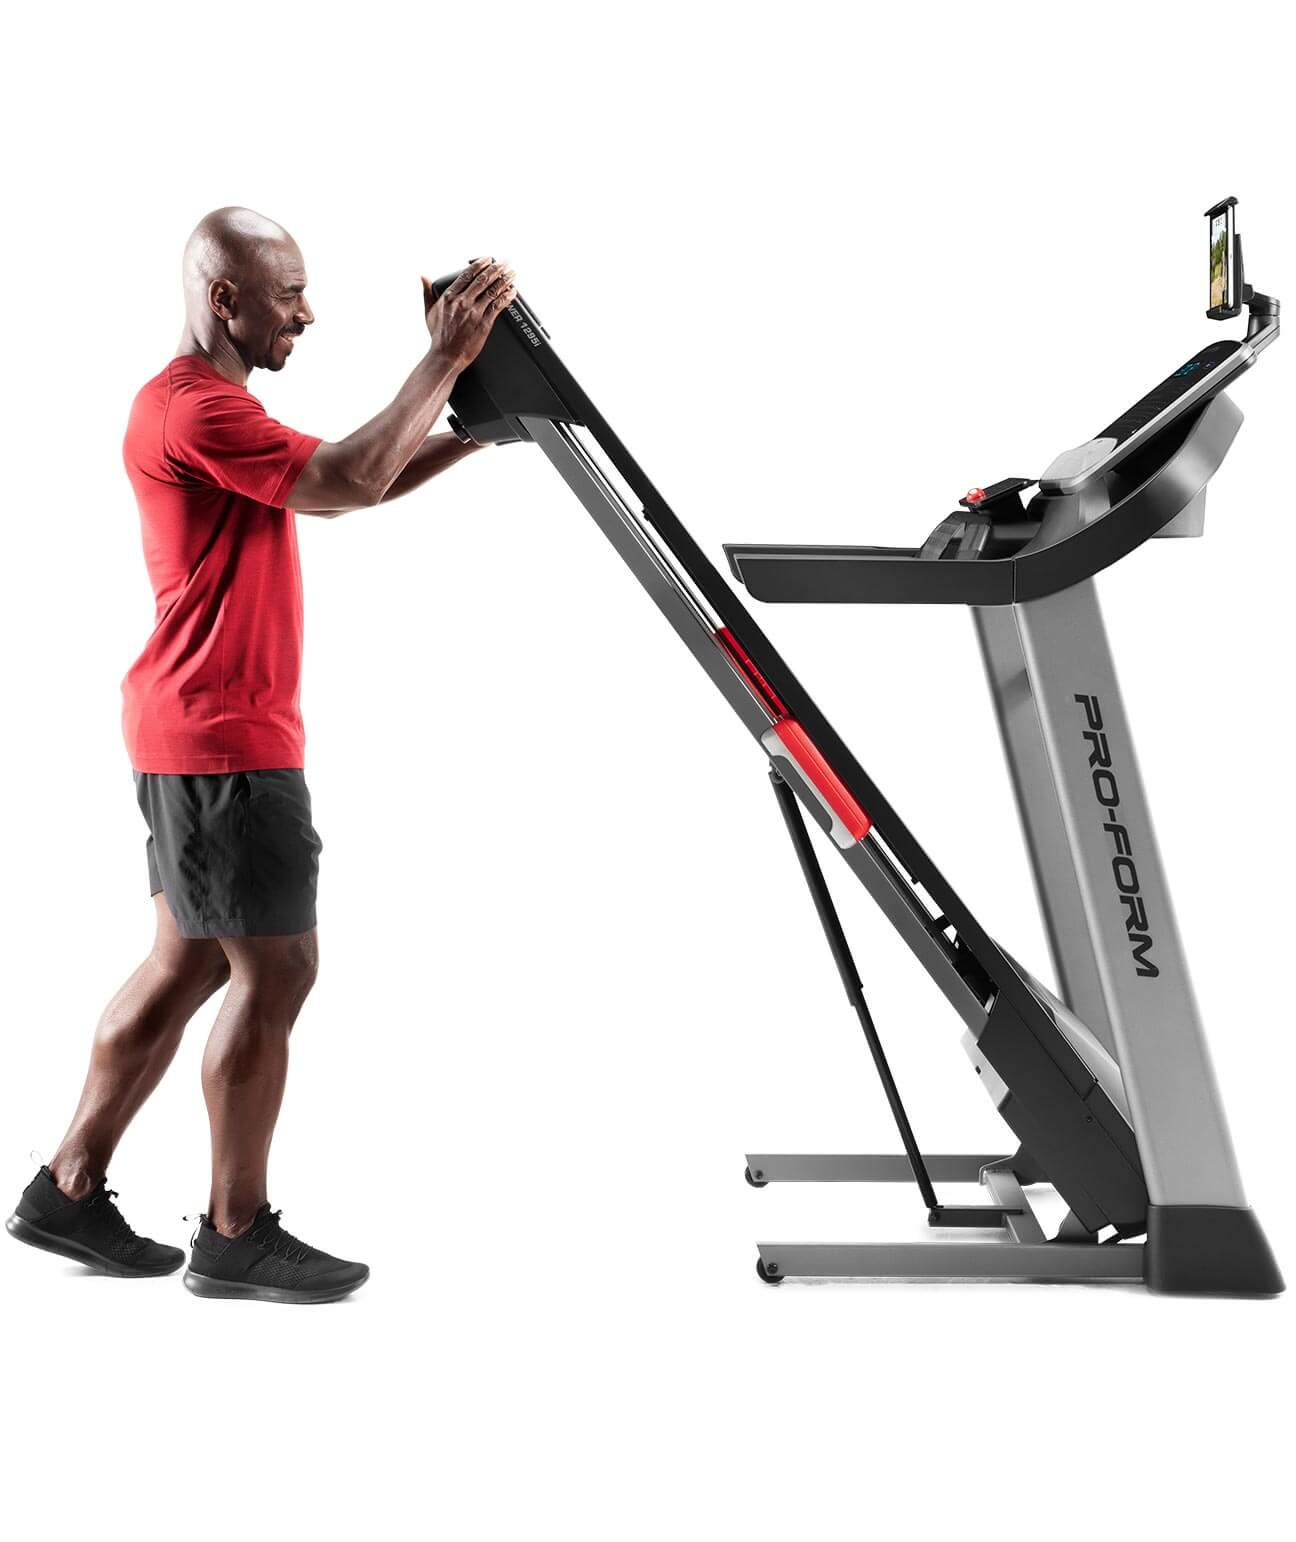 Image showing the treadmill folding up for easy storage